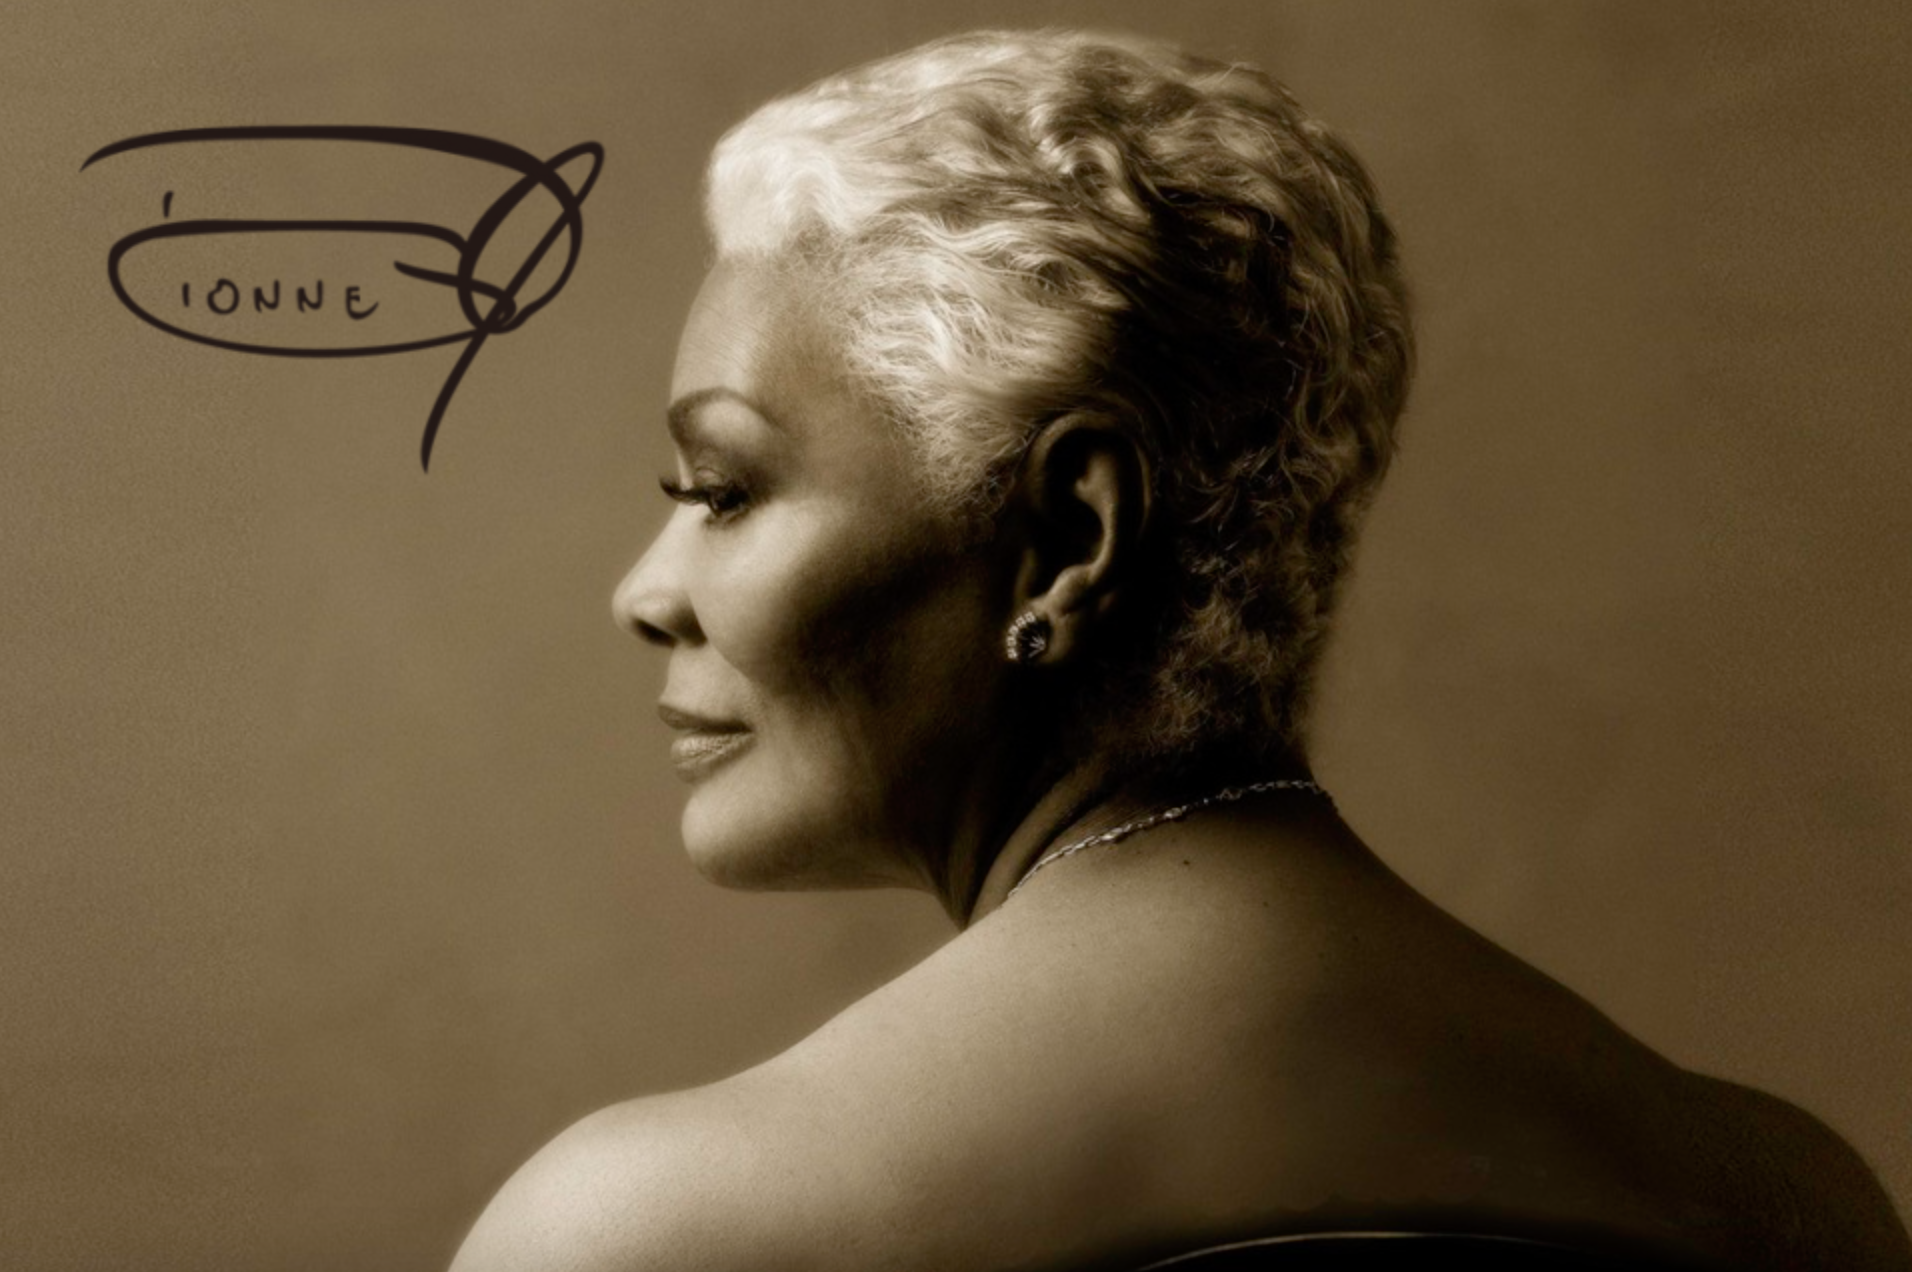 Dionne Warwick - Dionne is an American singer, actress and television show host. Warwick ranks among the 40 biggest hit makers of the entire rock era, based on the Billboard Hot 100 Pop Singles Charts. She is second only to Aretha Franklin as the most-charted female vocalist of all time, with 56 of Warwick's singles making the Billboard Hot 100 between 1962 and 1998 and 80 singles making all Billboard charts combined.